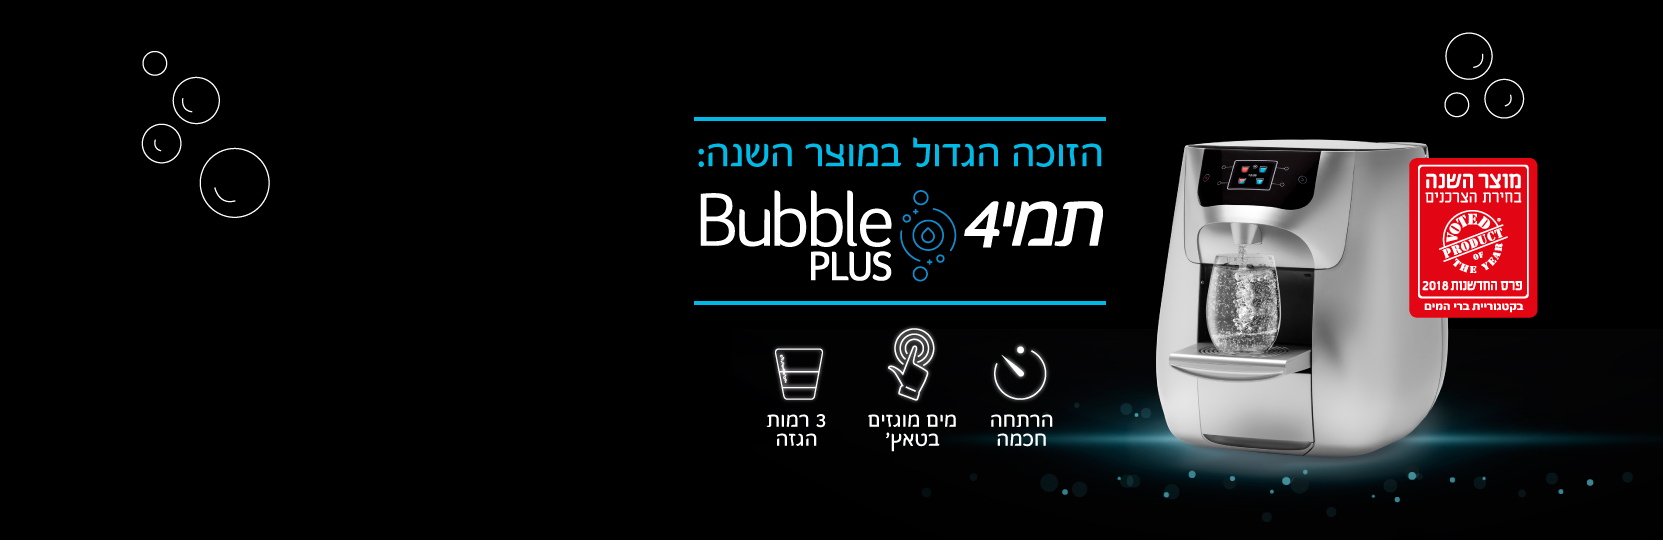 בר המים תמי4 bubble plus מוצר השנה